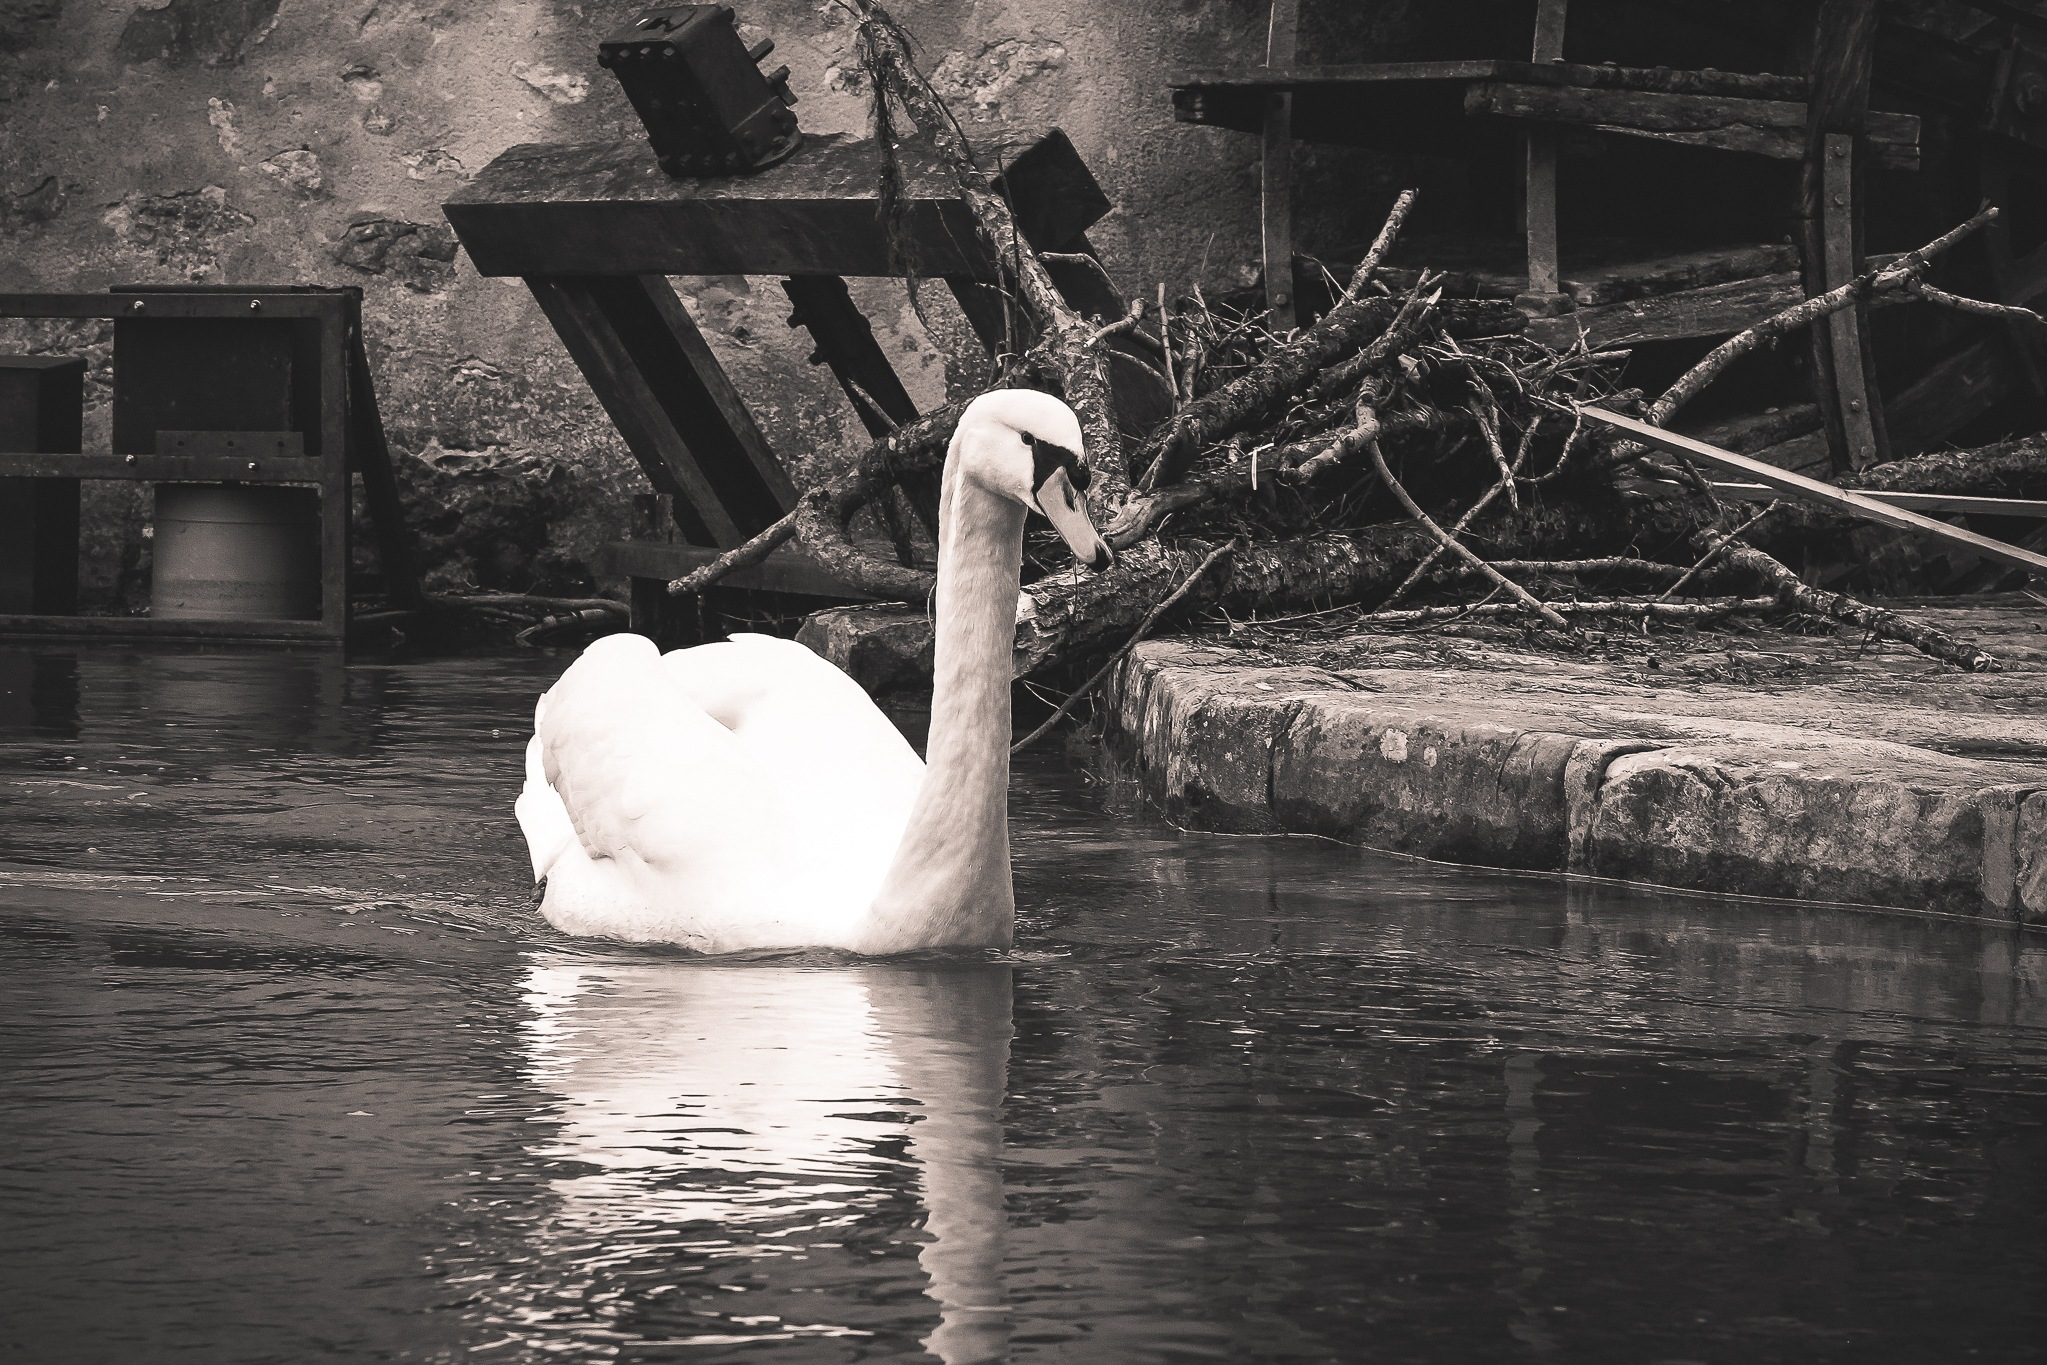 Cygne en balade ... by photosdan